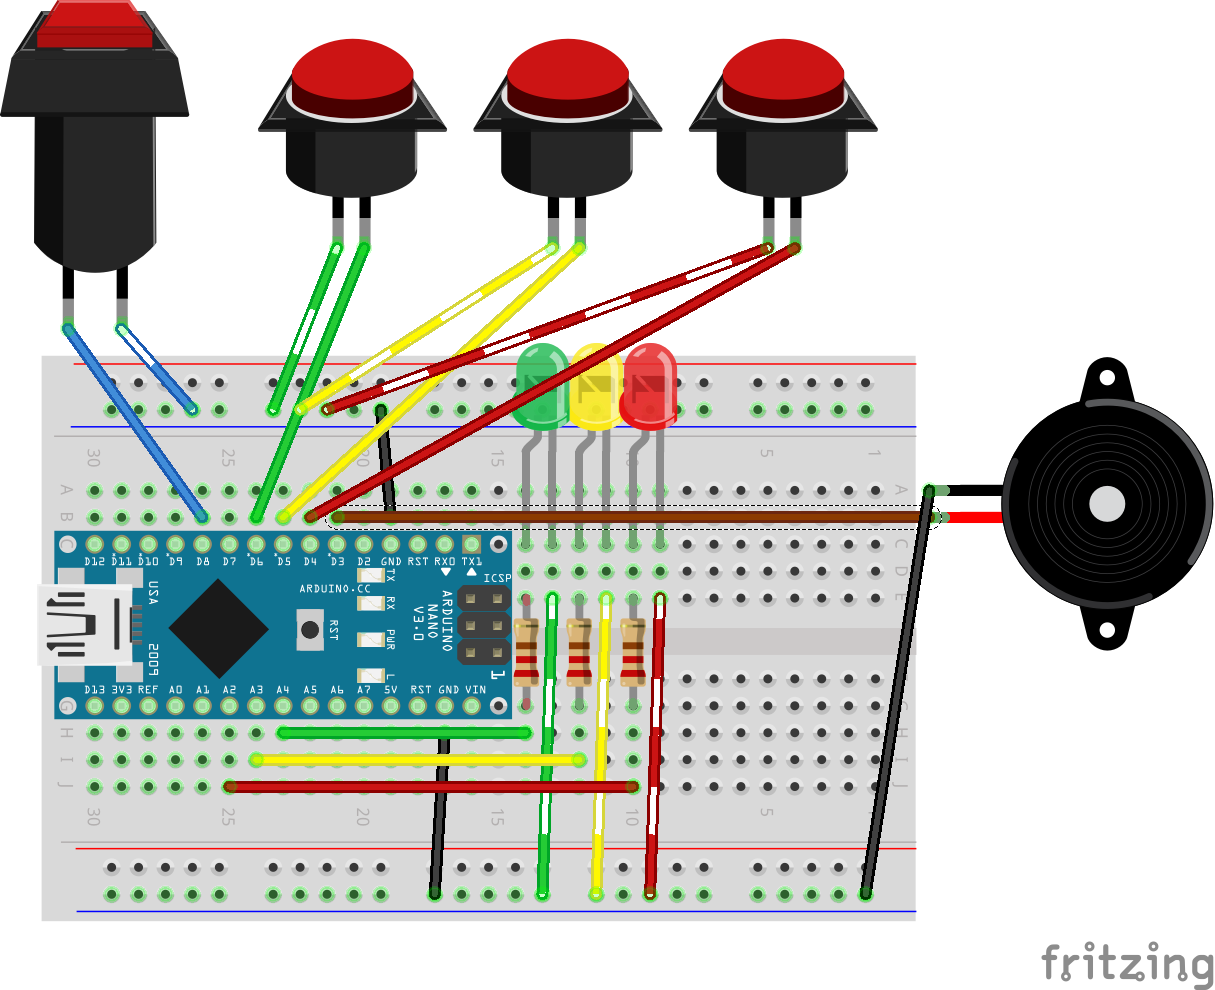 ring in system hackster io House Wiring Diagram we first built this on a breadboard, then moved it to a protoboard so it was semi permanent here is a wiring diagram